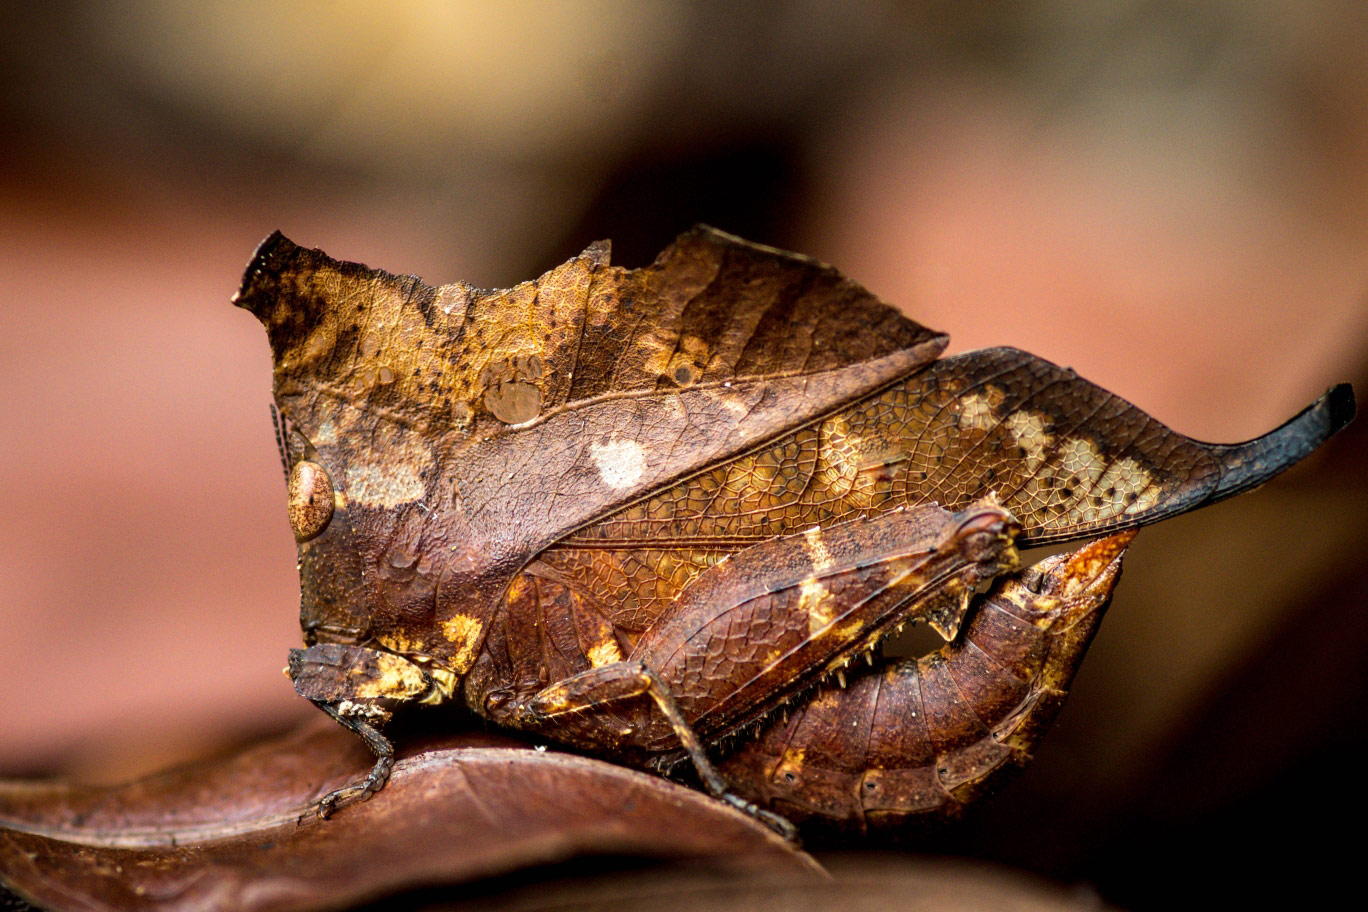 © Guilhem Duvot, Dead leaf or almost, Royal Society of Biology Photography Competition